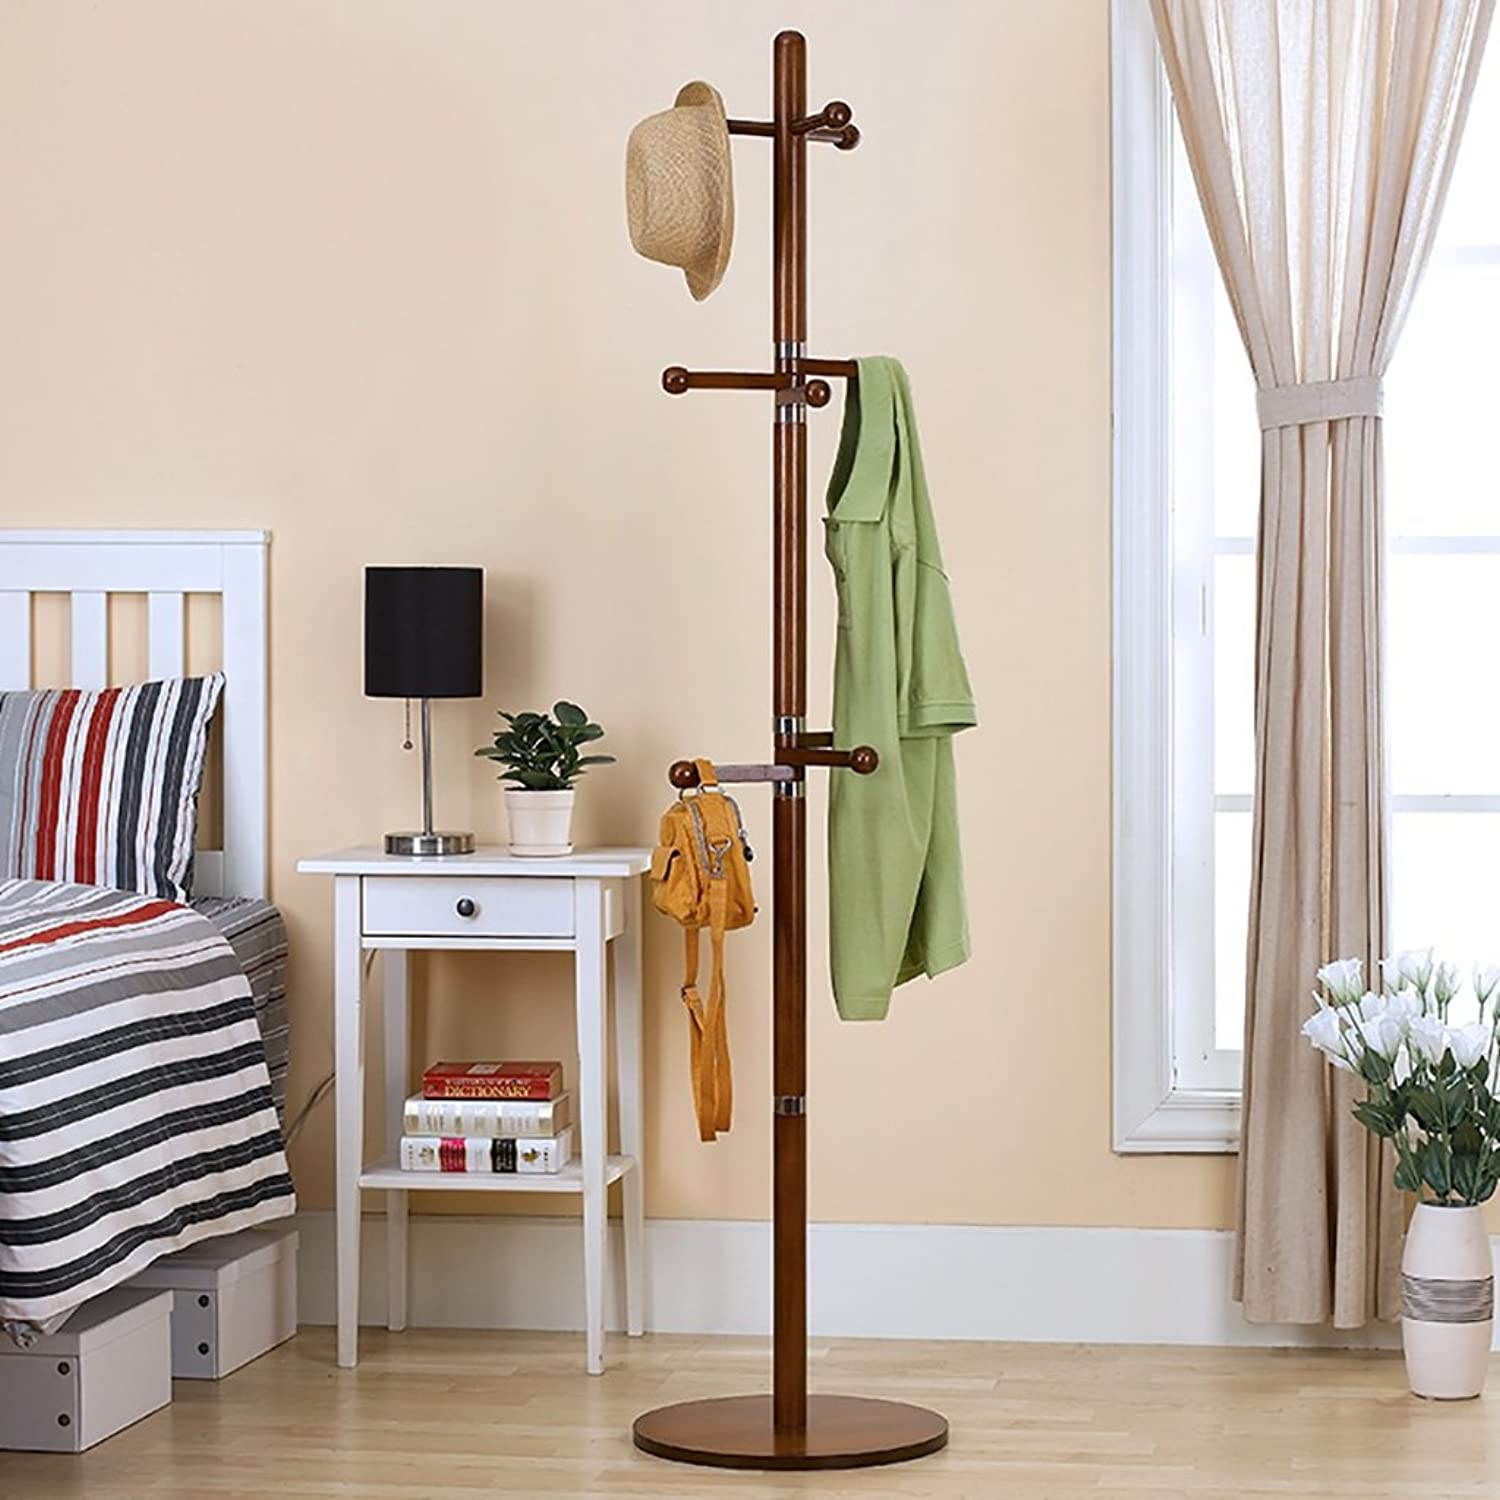 XJRHB Wooden Rack Hanger Hanger Hanger Organizer Wardrobe Closet Home 9 Hook Living Room Corridor Bedroom 175 cm (color   A)